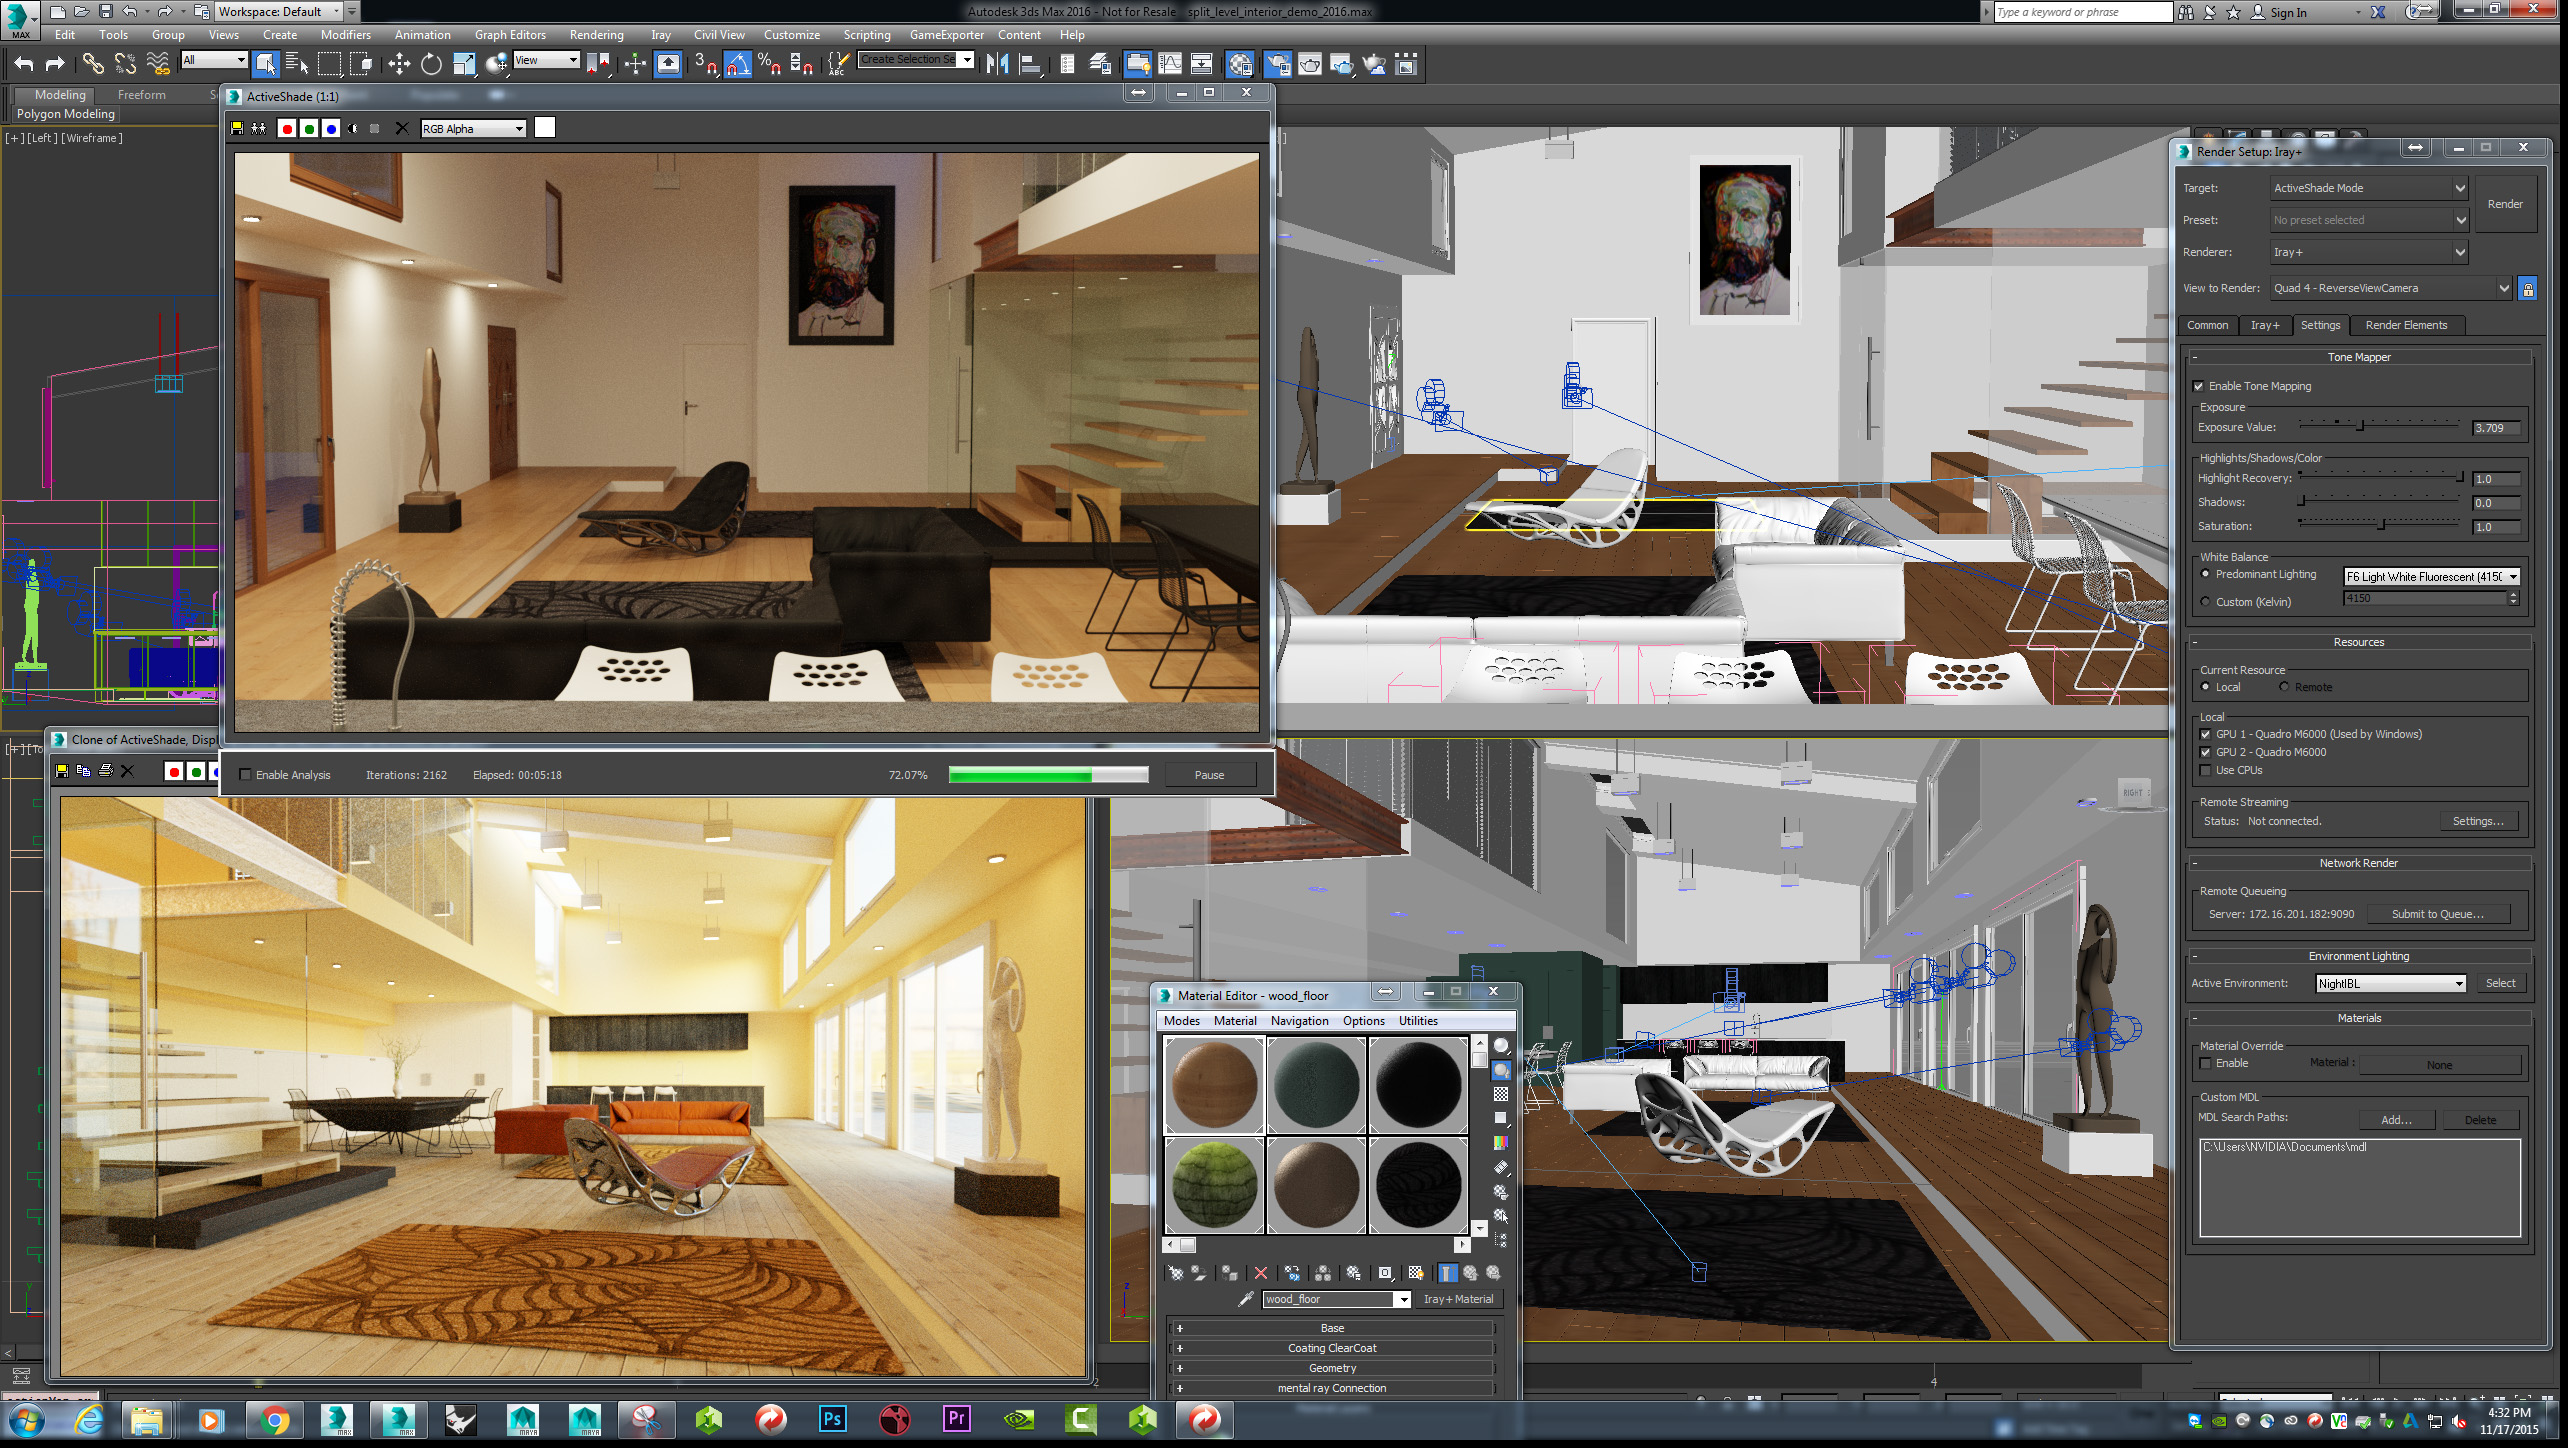 3Ds MAX 2010 lighting & Autodesk 3Ds Max- Lighting (2010) u2013 Cad cam Engineering WorldWide